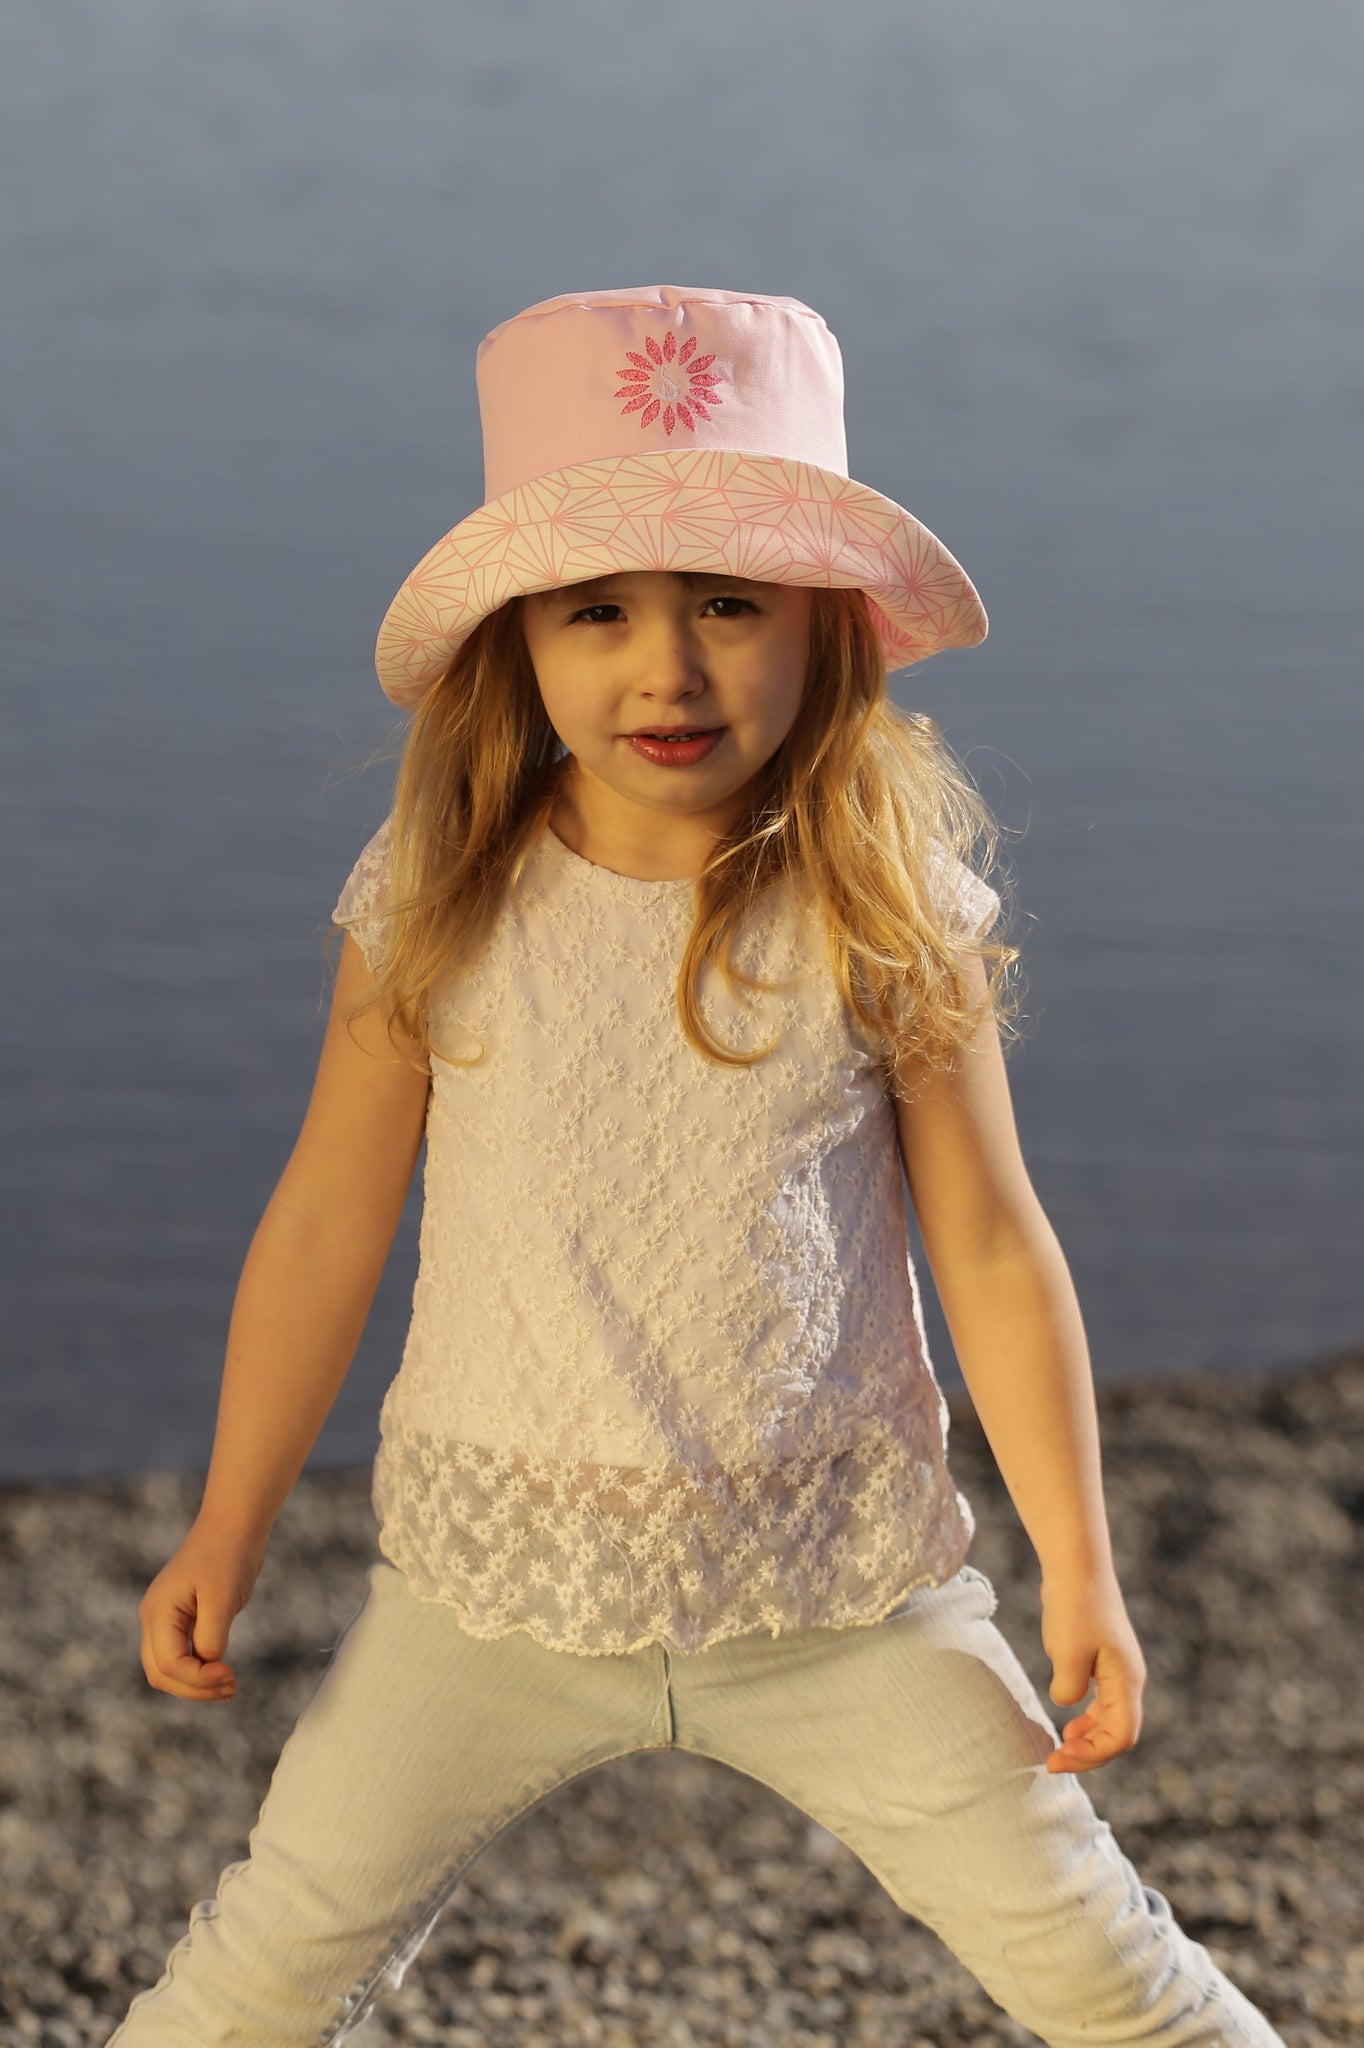 BOB BAMBINO ROSE POUDRE - MADE IN FRANCE